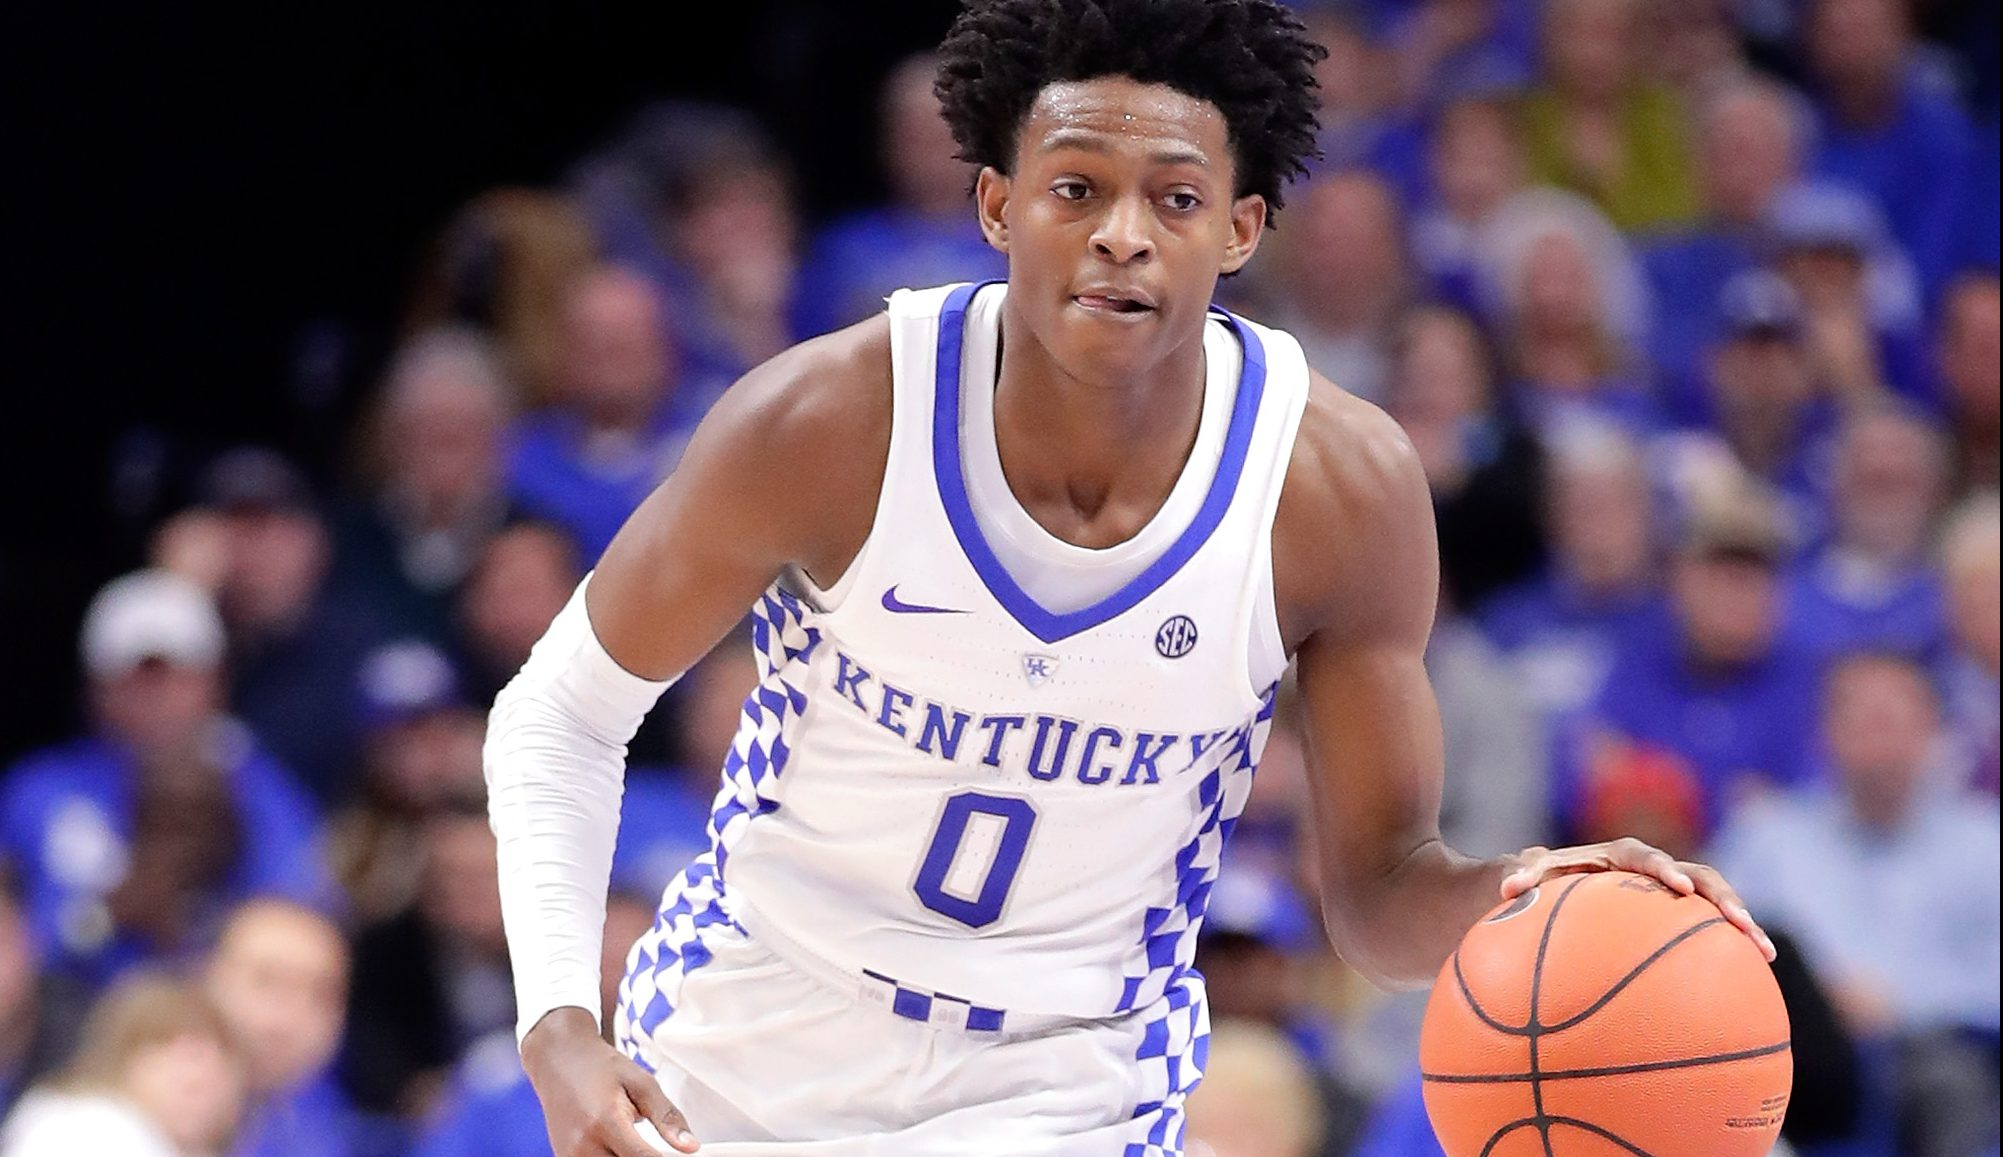 LEXINGTON, KY - DECEMBER 07: De'Aaron Fox #0 of the Kentucky Wildcats dribbles the ball during the game against the Valparaiso Crusaders at Rupp Arena on December 7, 2016 in Lexington, Kentucky. (Photo by Andy Lyons/Getty Images)